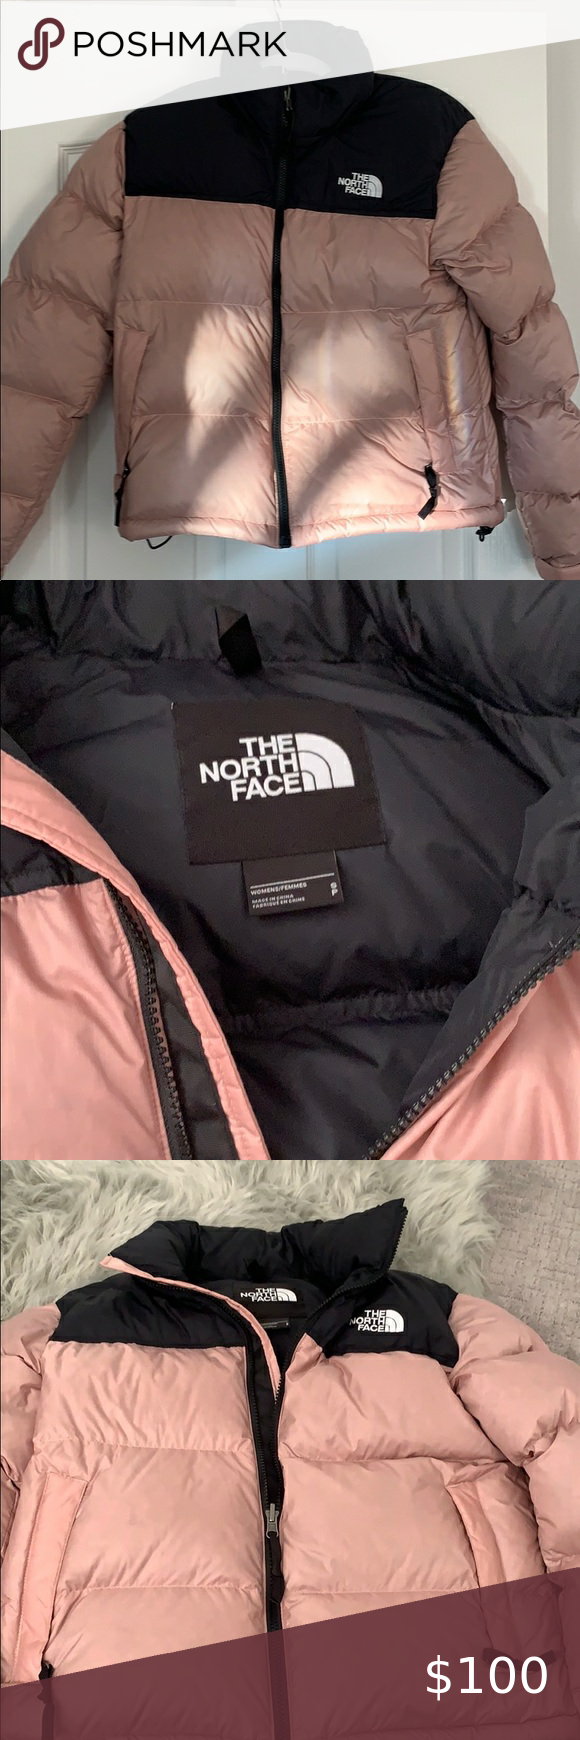 The North Face Retro Nuptse Jacket Rose Gold The North Face Retro Nuptse North Face Puffy Jacket The North Face [ 1740 x 580 Pixel ]